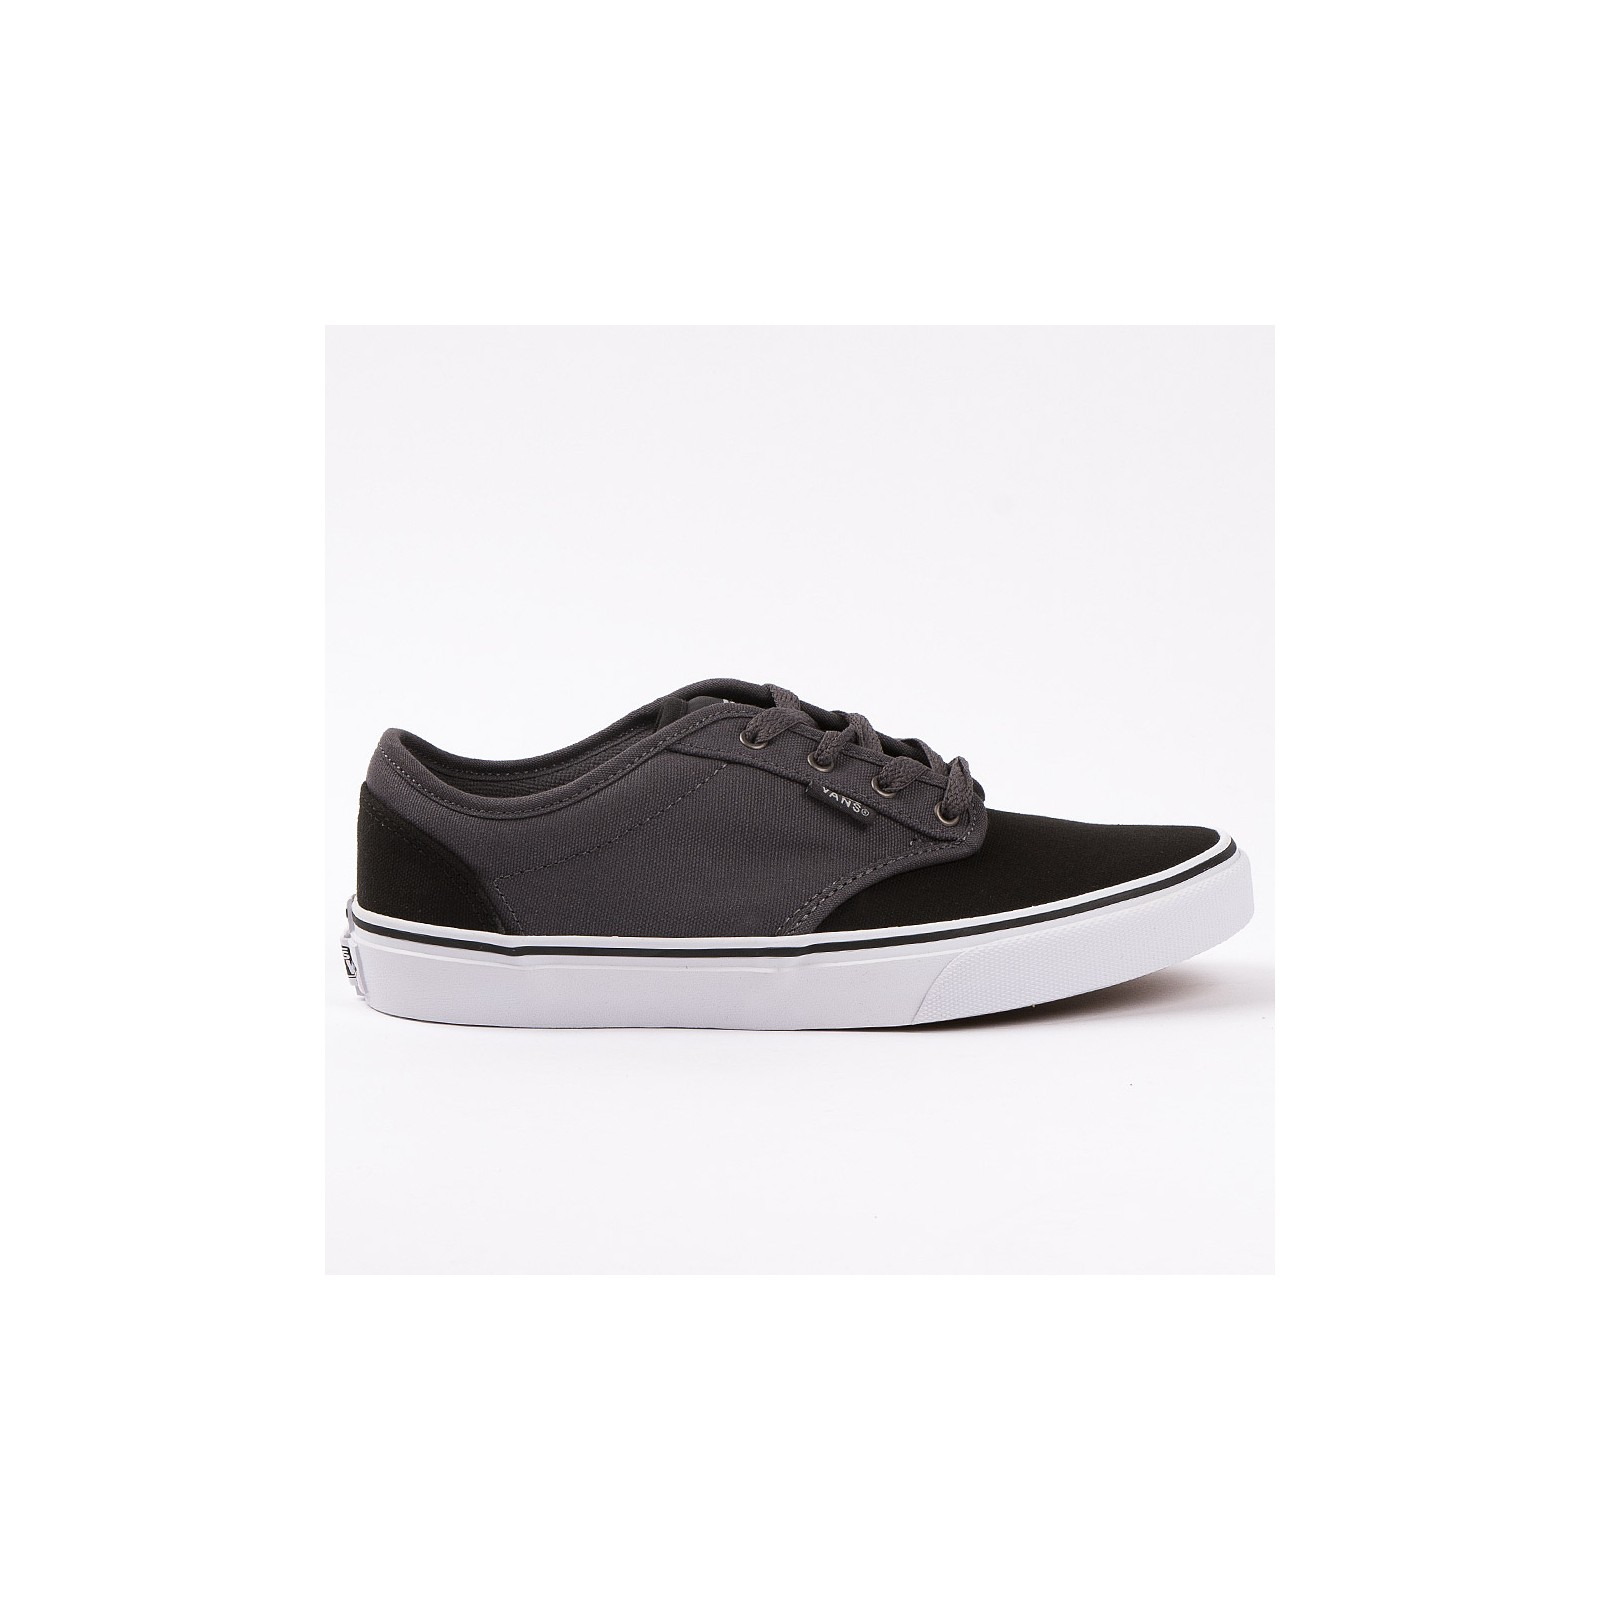 Vans Atwood Descuento